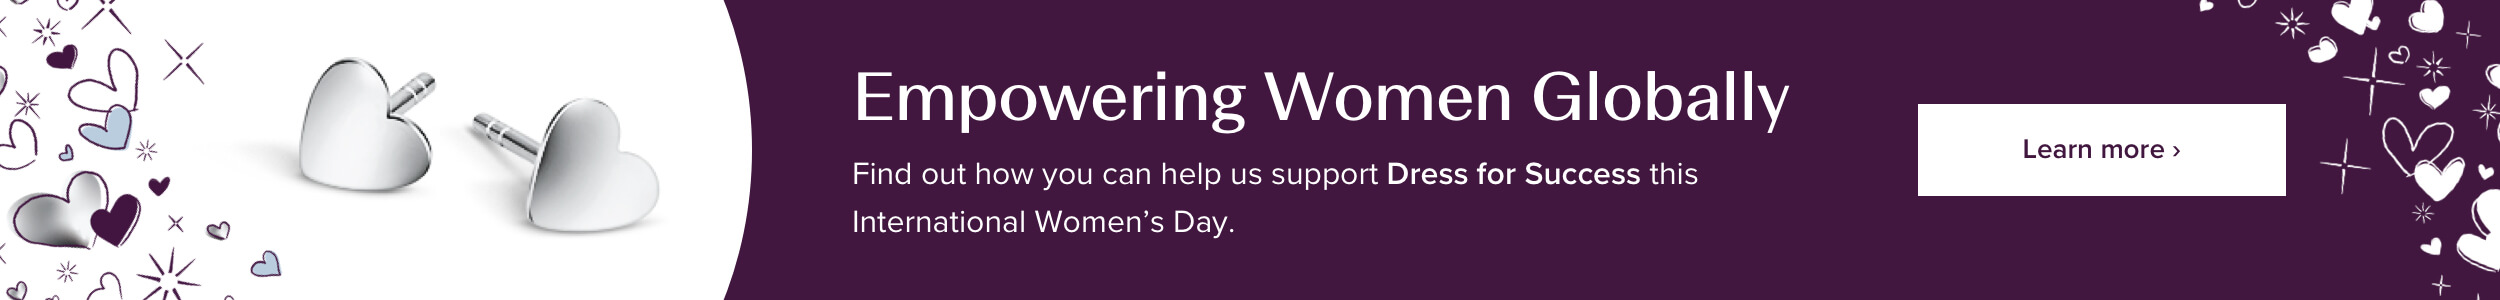 Empowering Women Globally: Michael Hill is donating to Dress for Success this International Women's Day